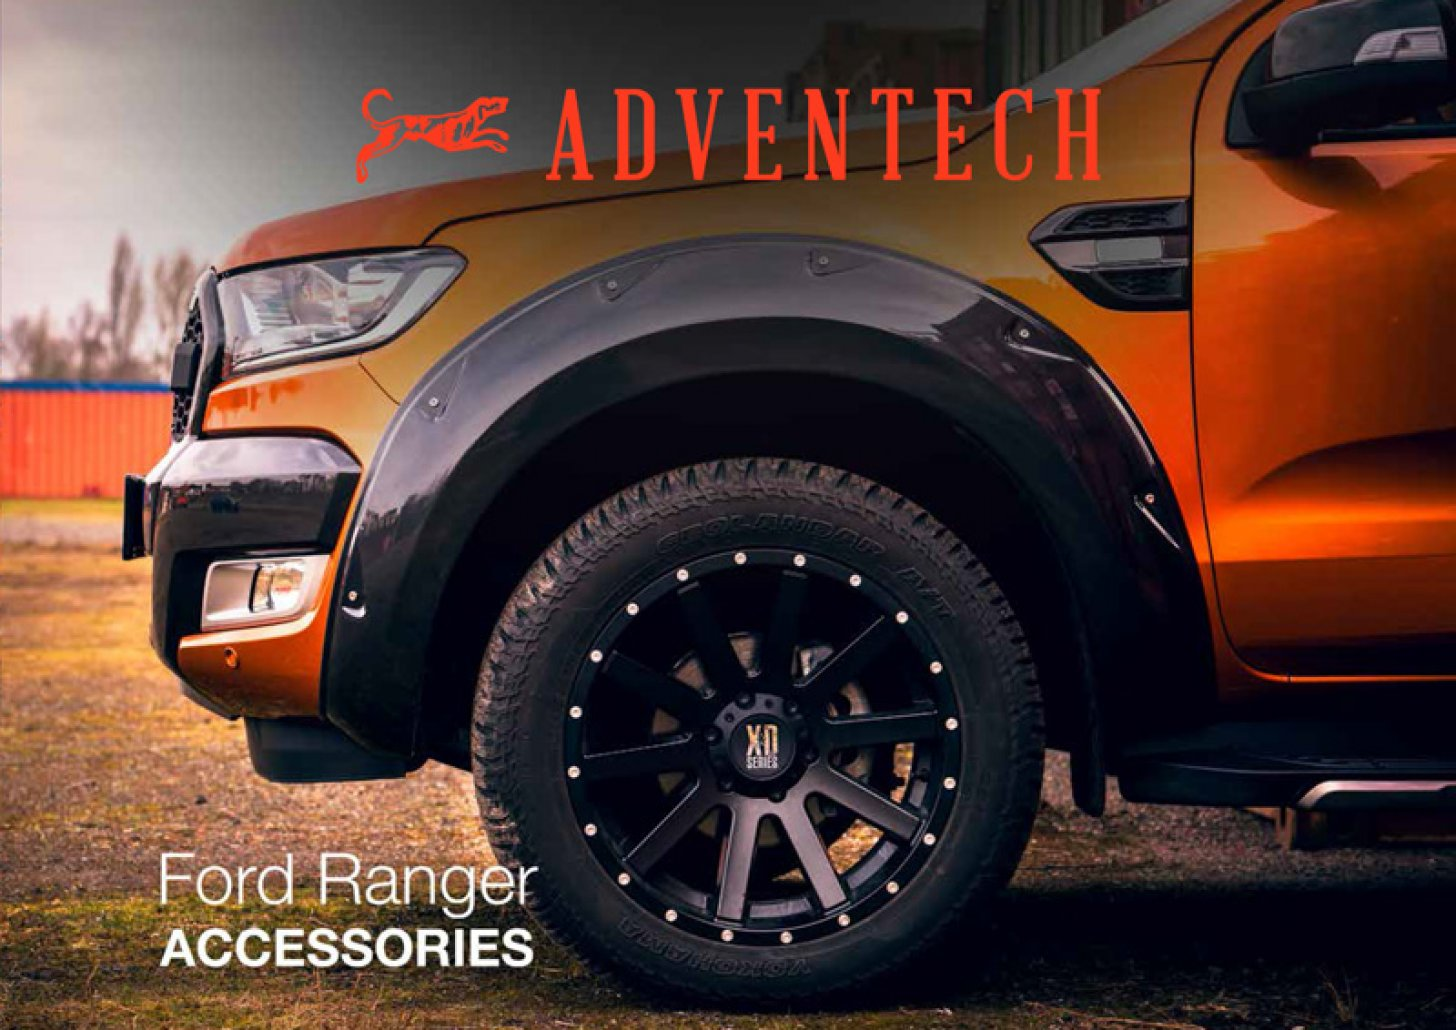 Adventech 4x4 pense aux pick-up !